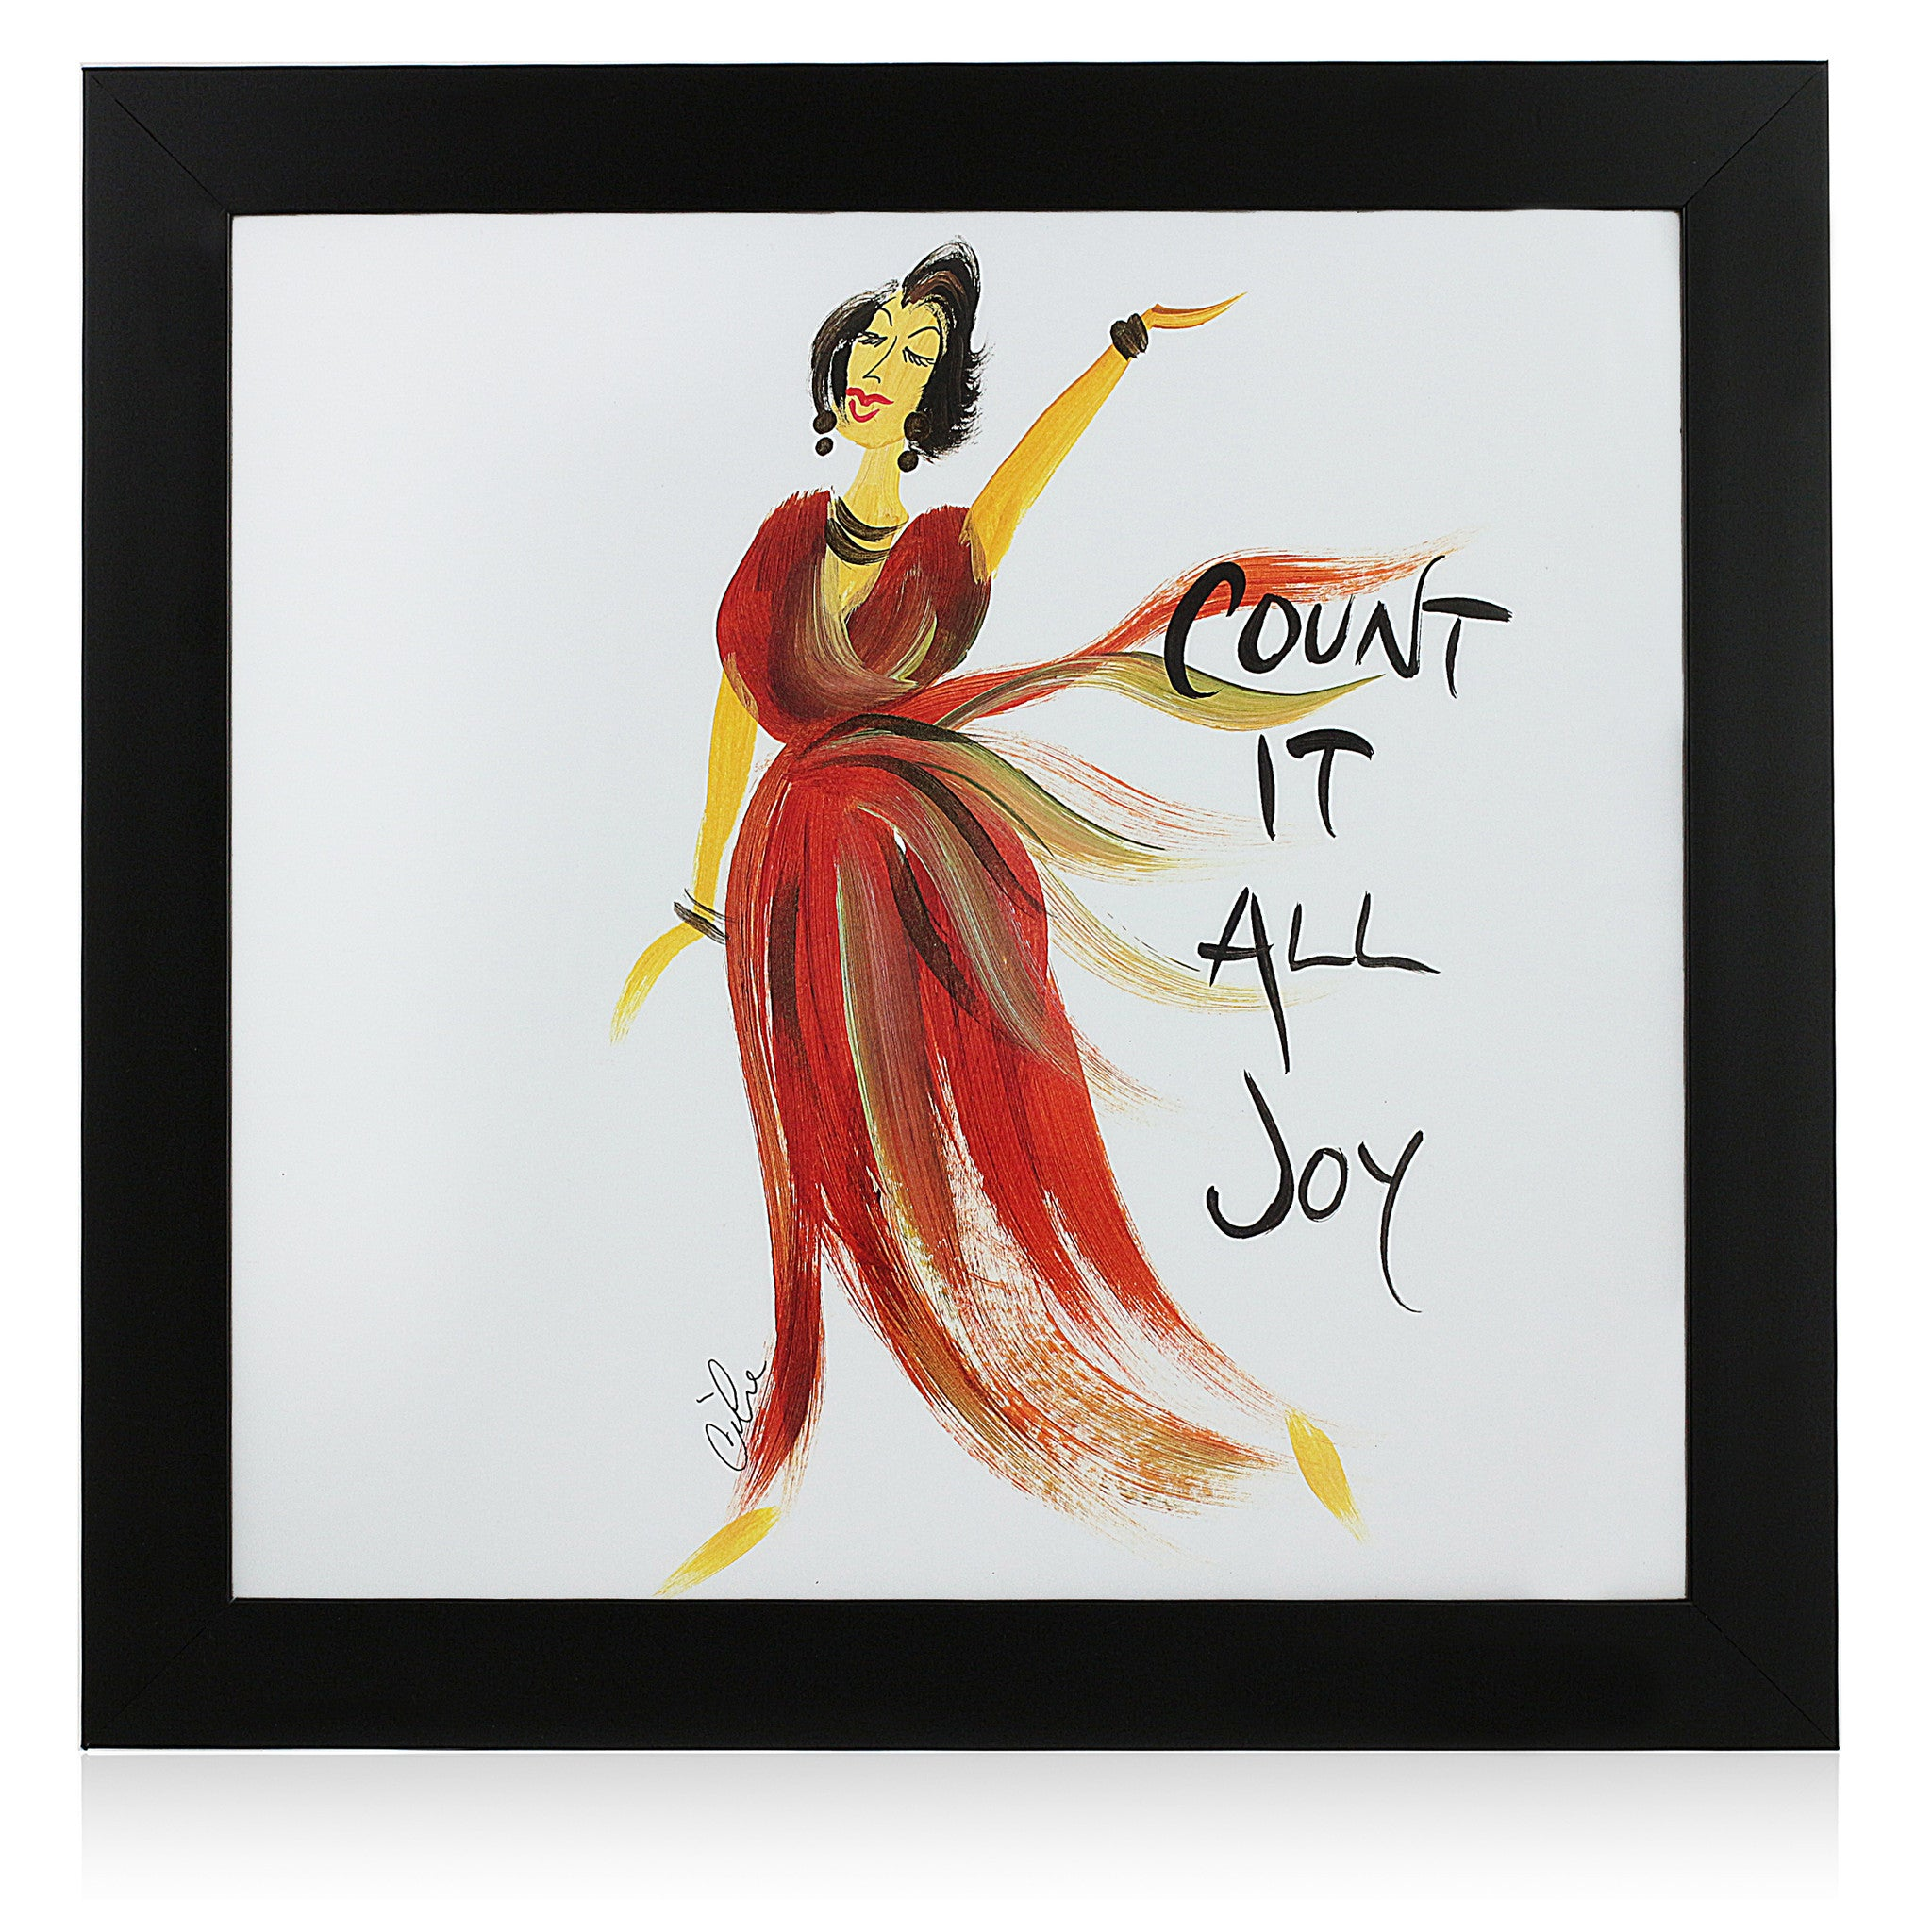 Count it All Joy by Cidne Wallace